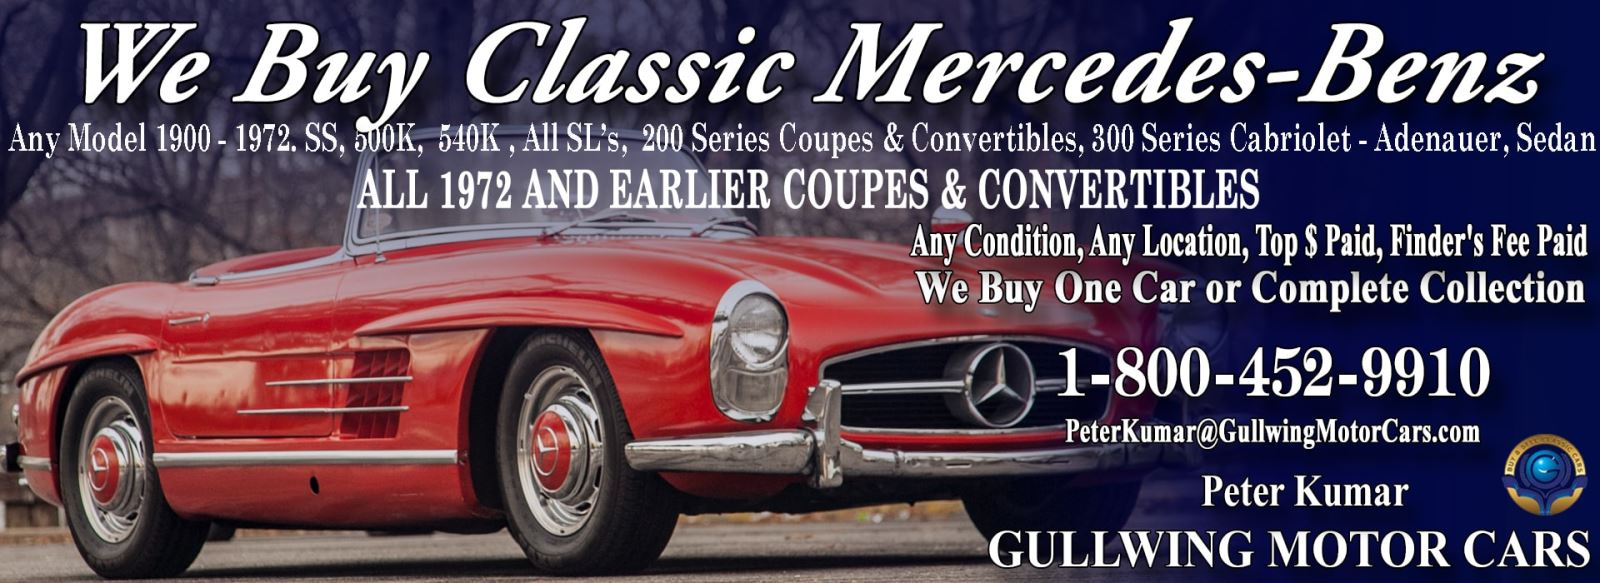 Classic Mercedes 540K for sale, we buy vintage Mercedes 540K. Call Peter Kumar. Gullwing Motor